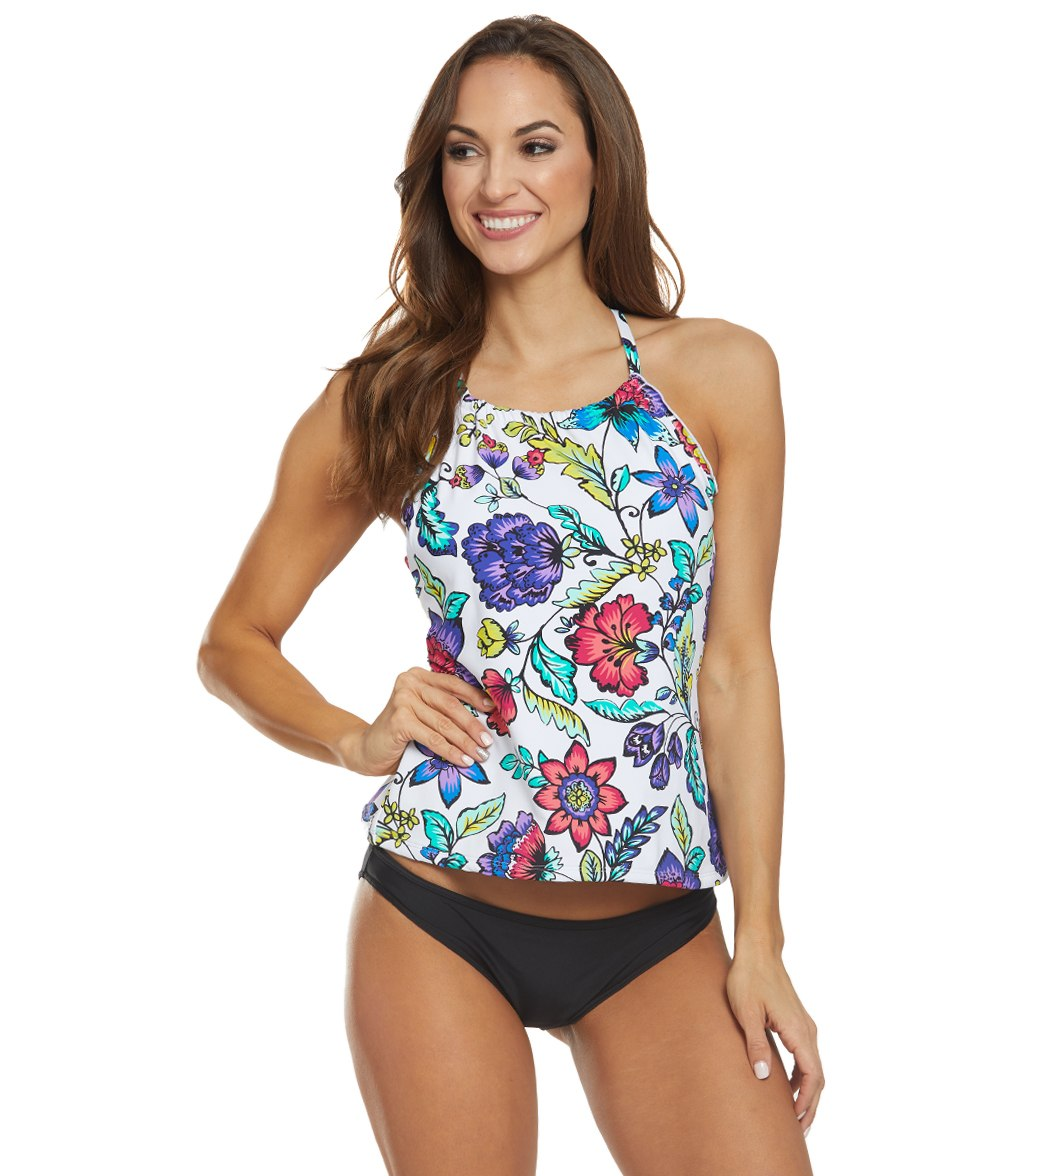 a34f3ca43f484 24th & Ocean Flora Botanica High Neck Underwire Tankini Top at  SwimOutlet.com - Free Shipping